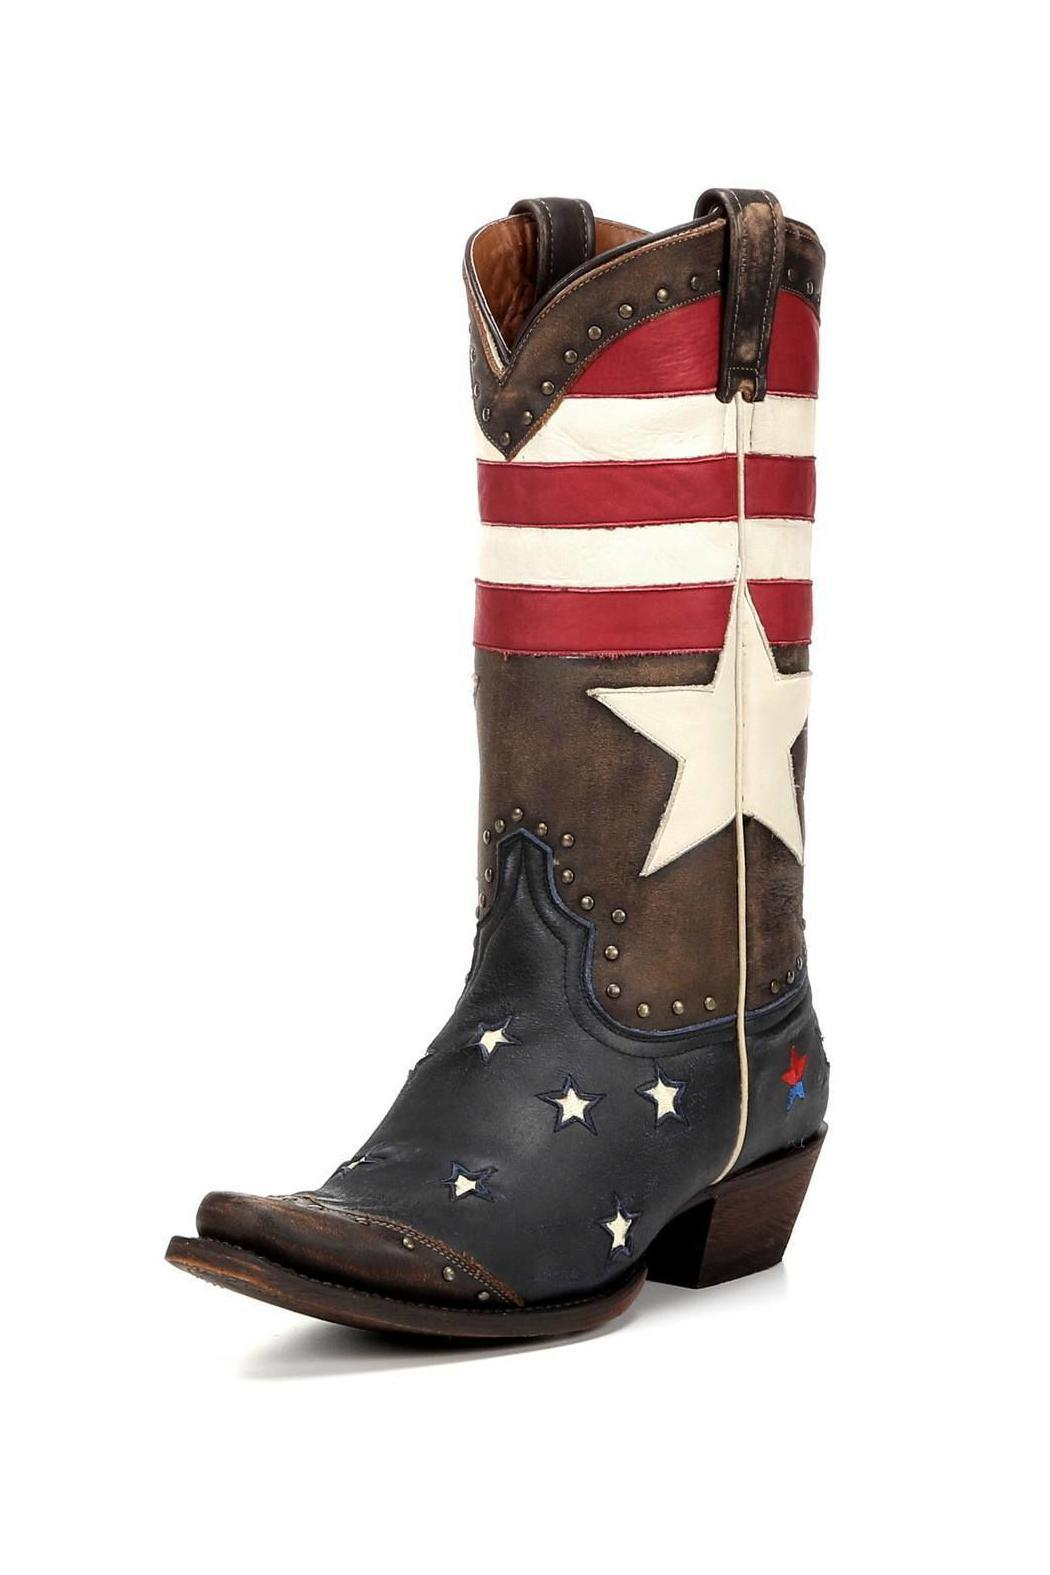 Redneck Riviera Freedom Western Boot From Texas By